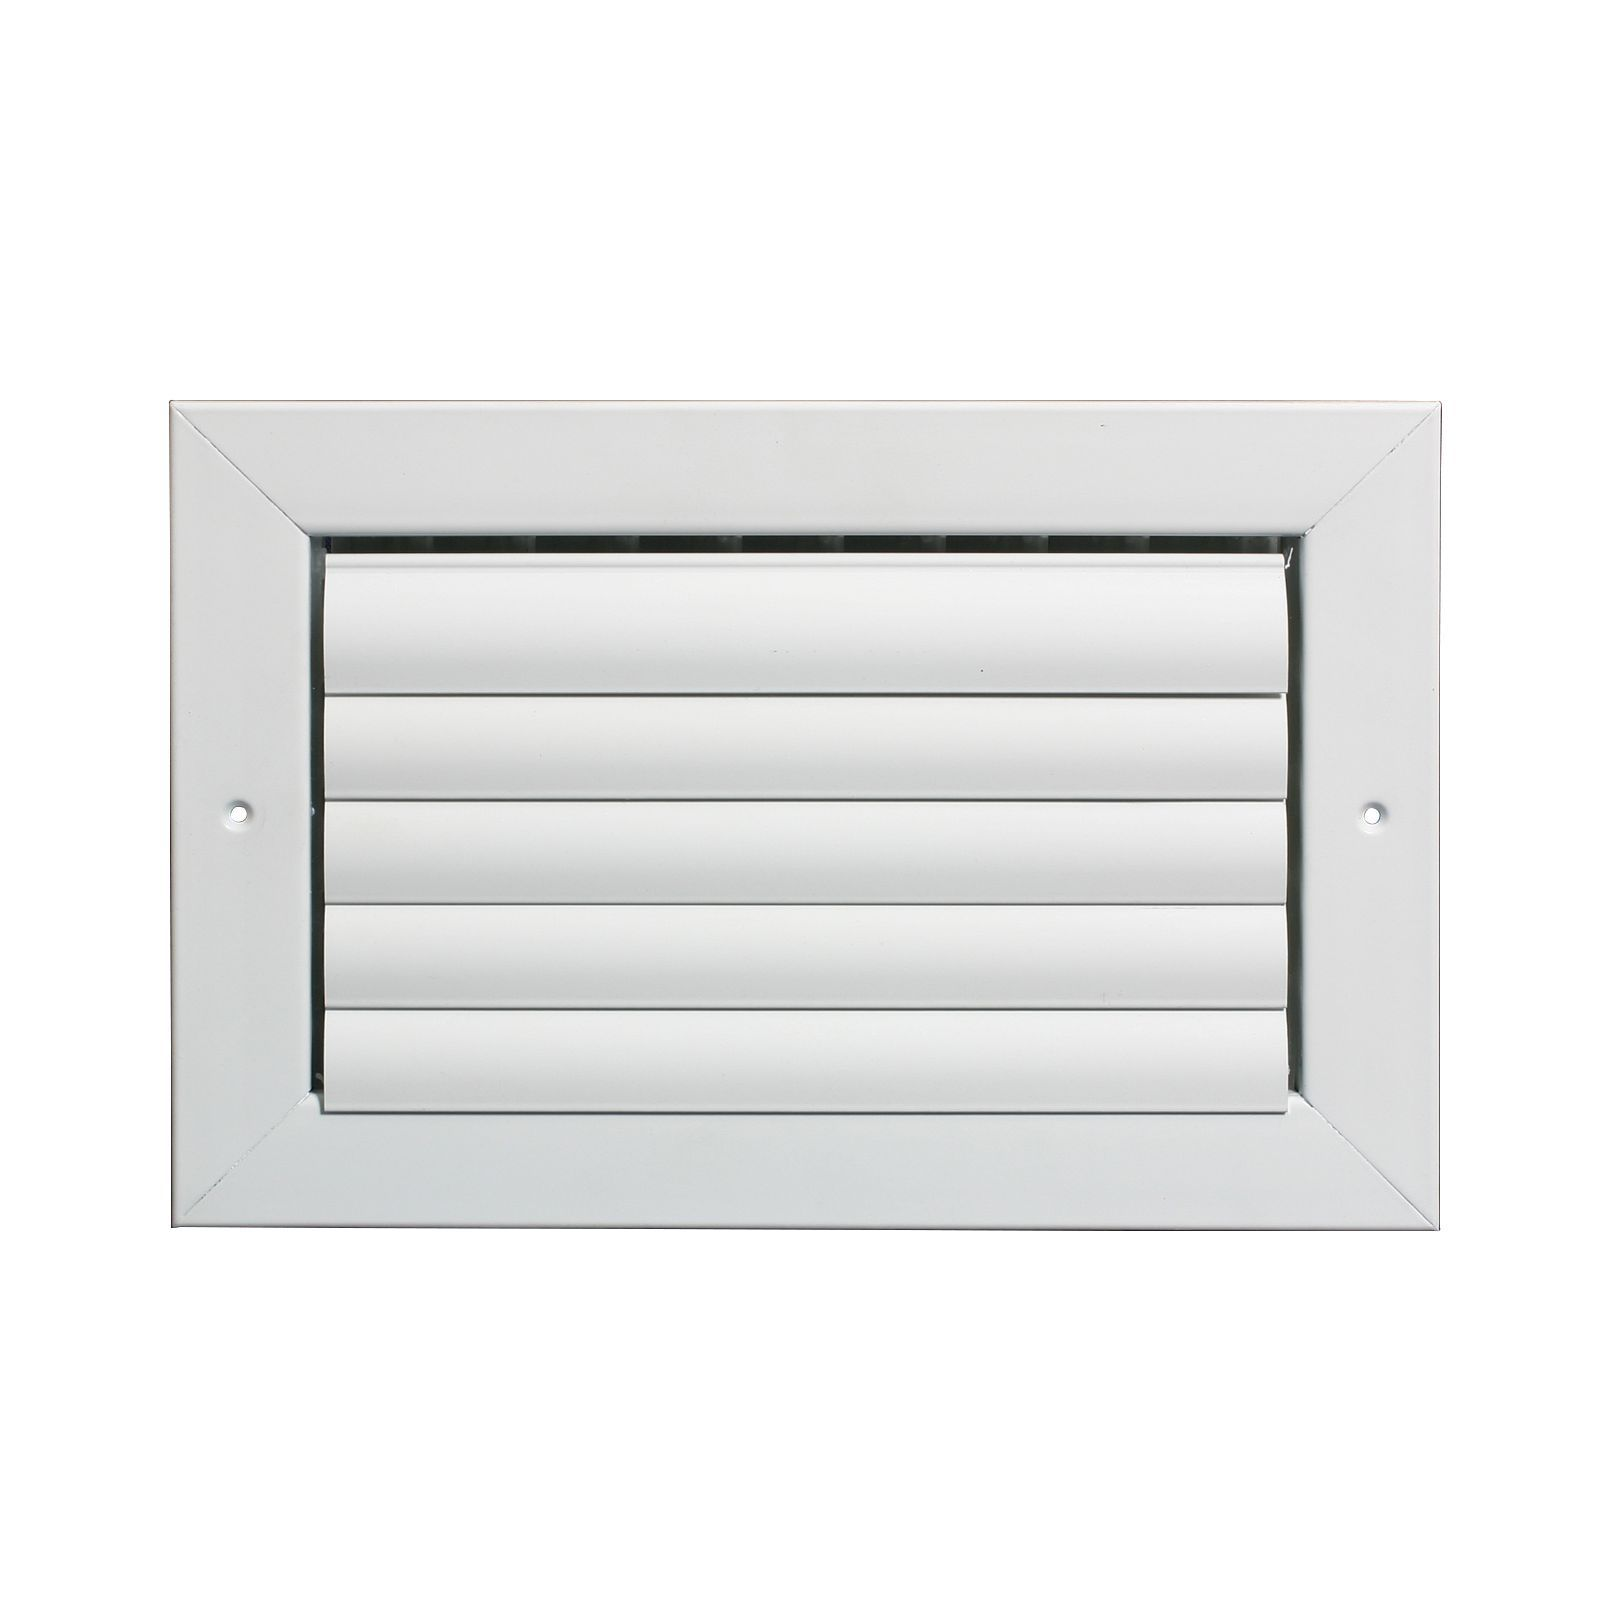 "Grille Tech CL1M1006 - Aluminum Ceiling 1-Way Deflection Supply, Multi-shutter 10"" X 6"" White"